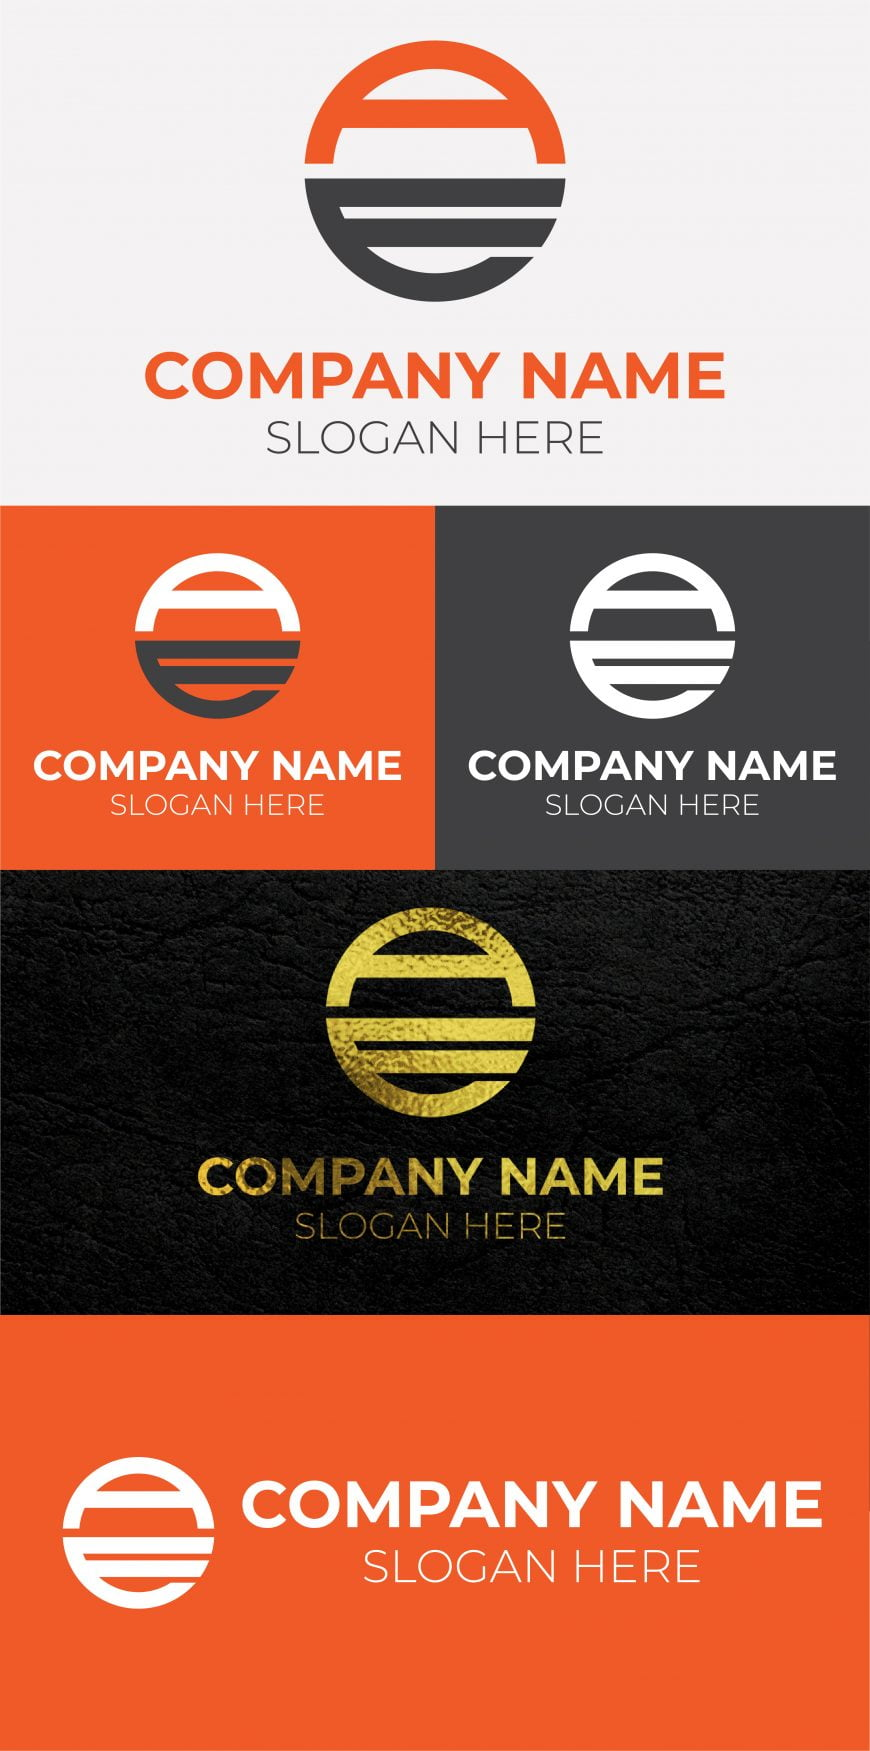 CREATIVE-AE-LETTER-DESIGN-FREE-TEMPLATE-scaled